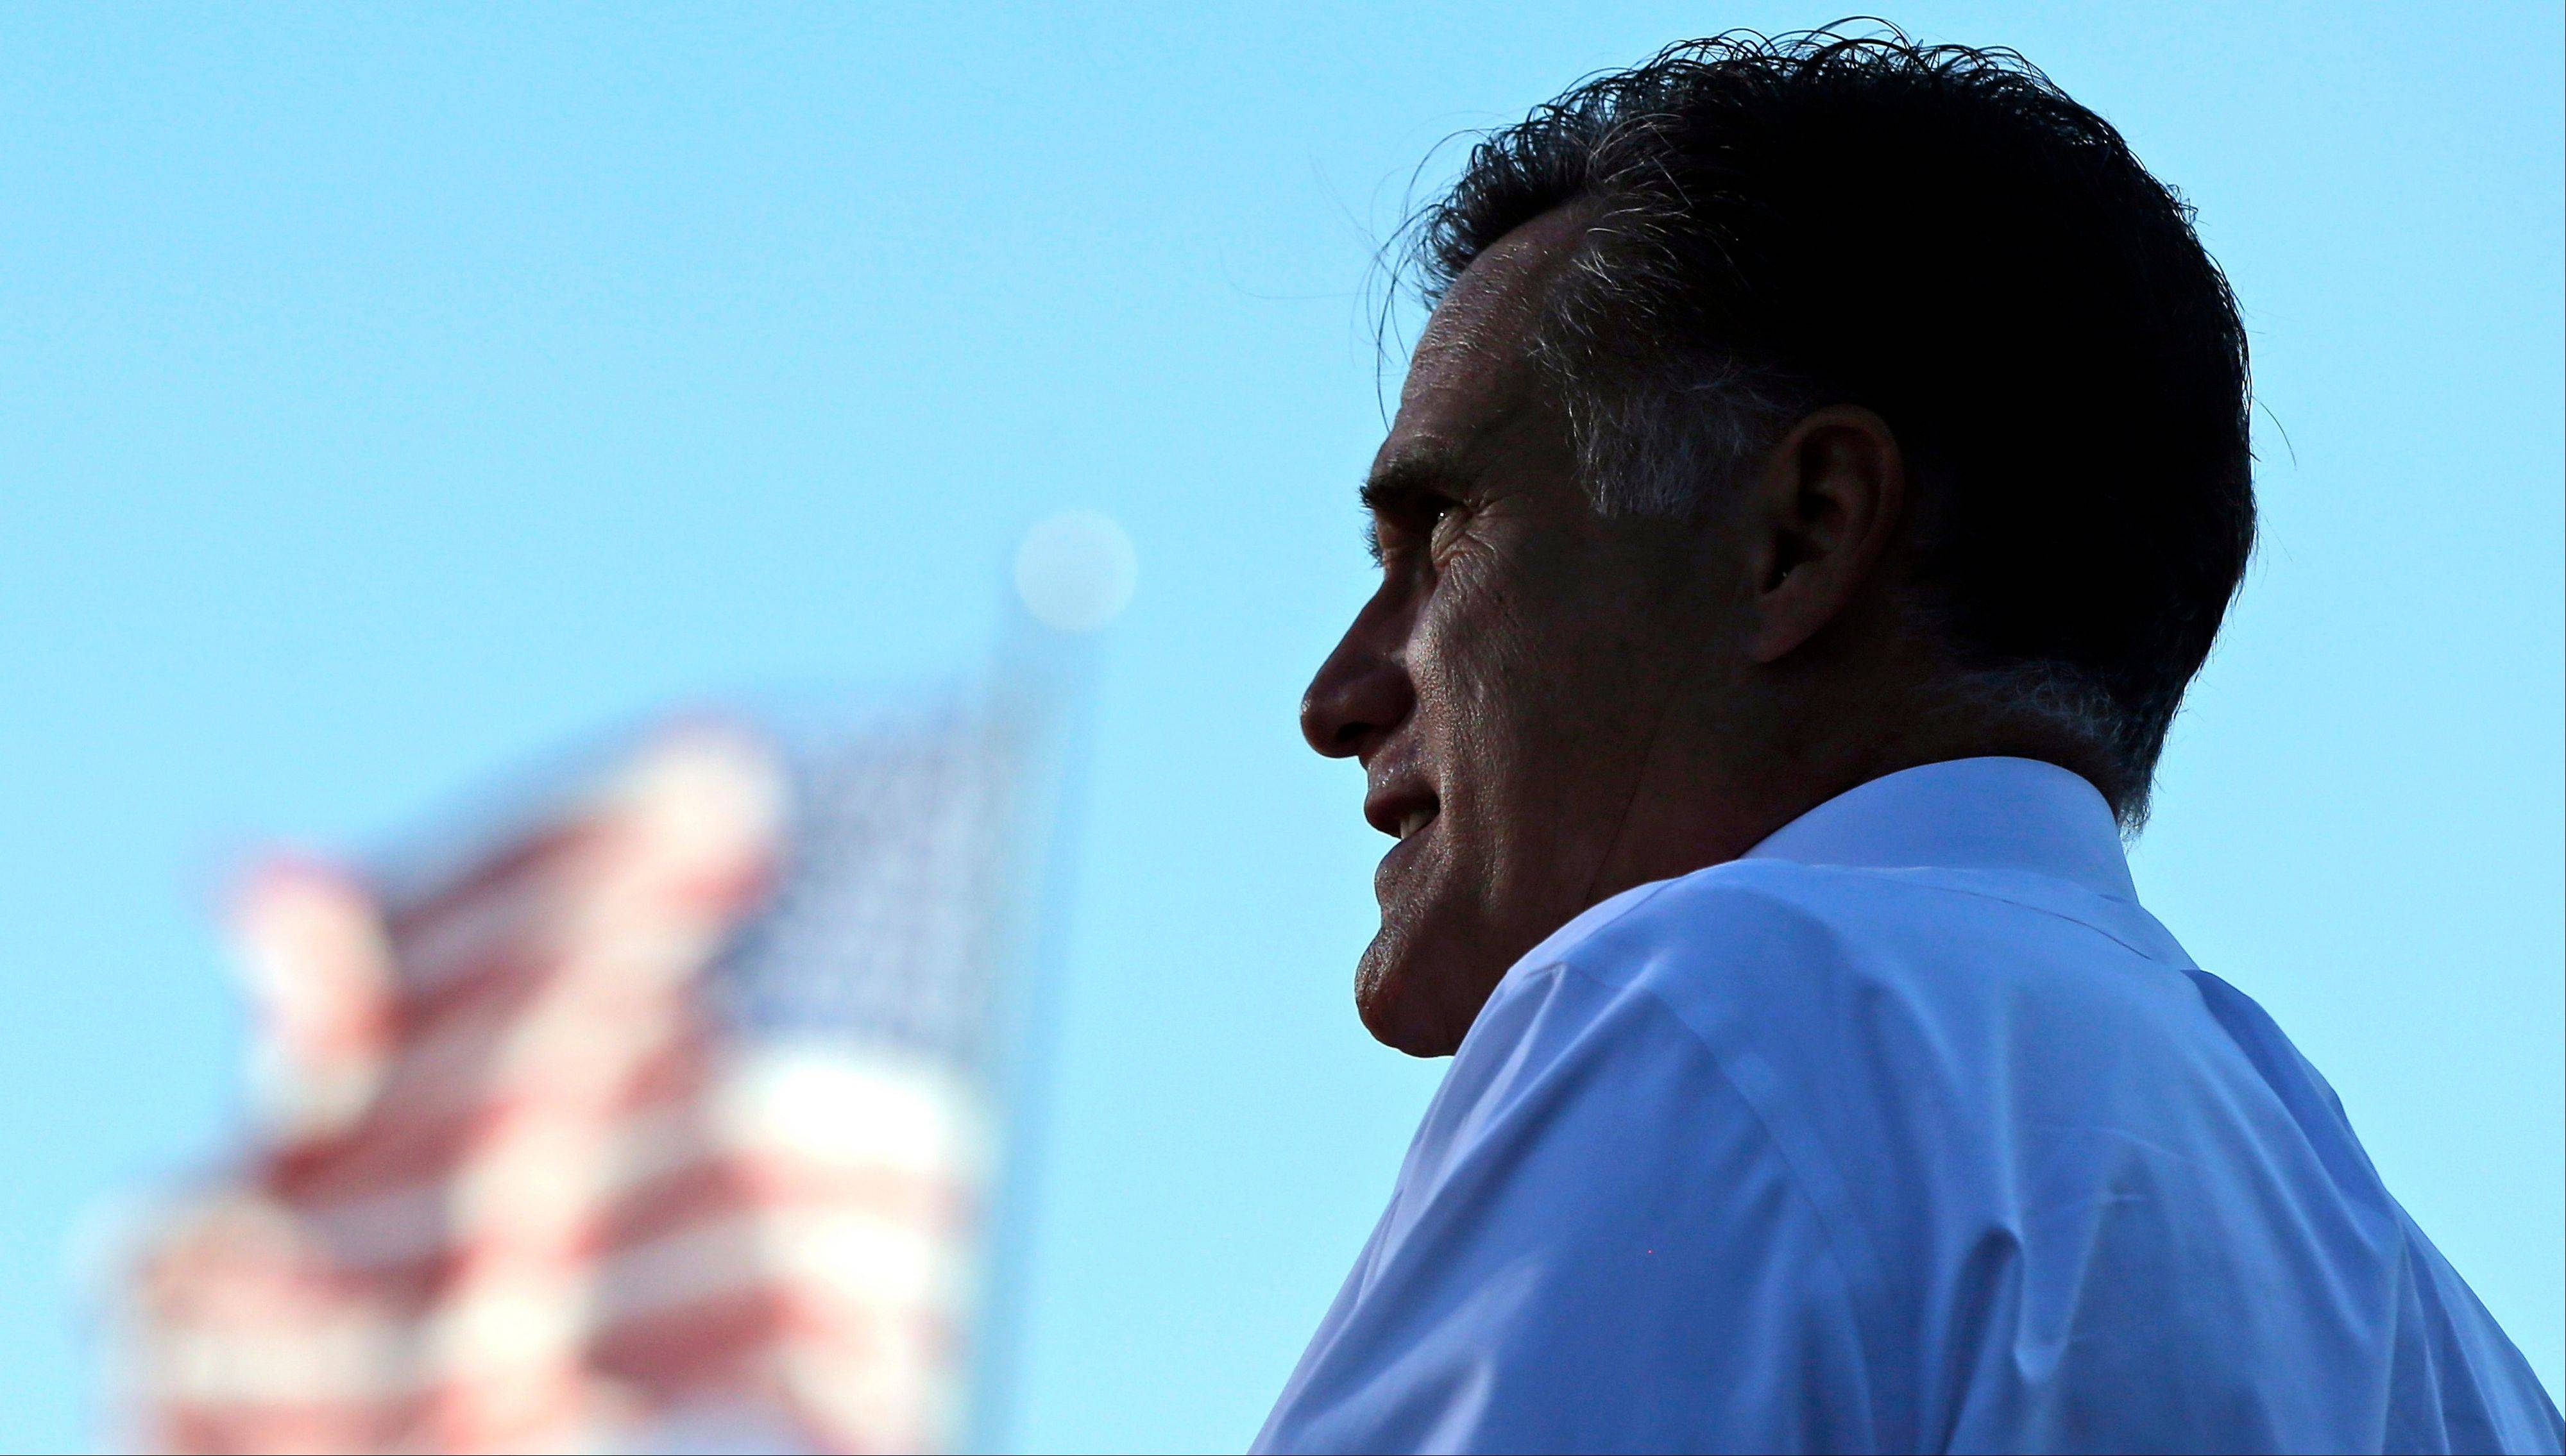 Republican presidential candidate and former Massachusetts Gov. Mitt Romney campaigns at Worthington Industries, a metal processing company, in Worthington, Ohio, Thursday, Oct. 25, 2012.